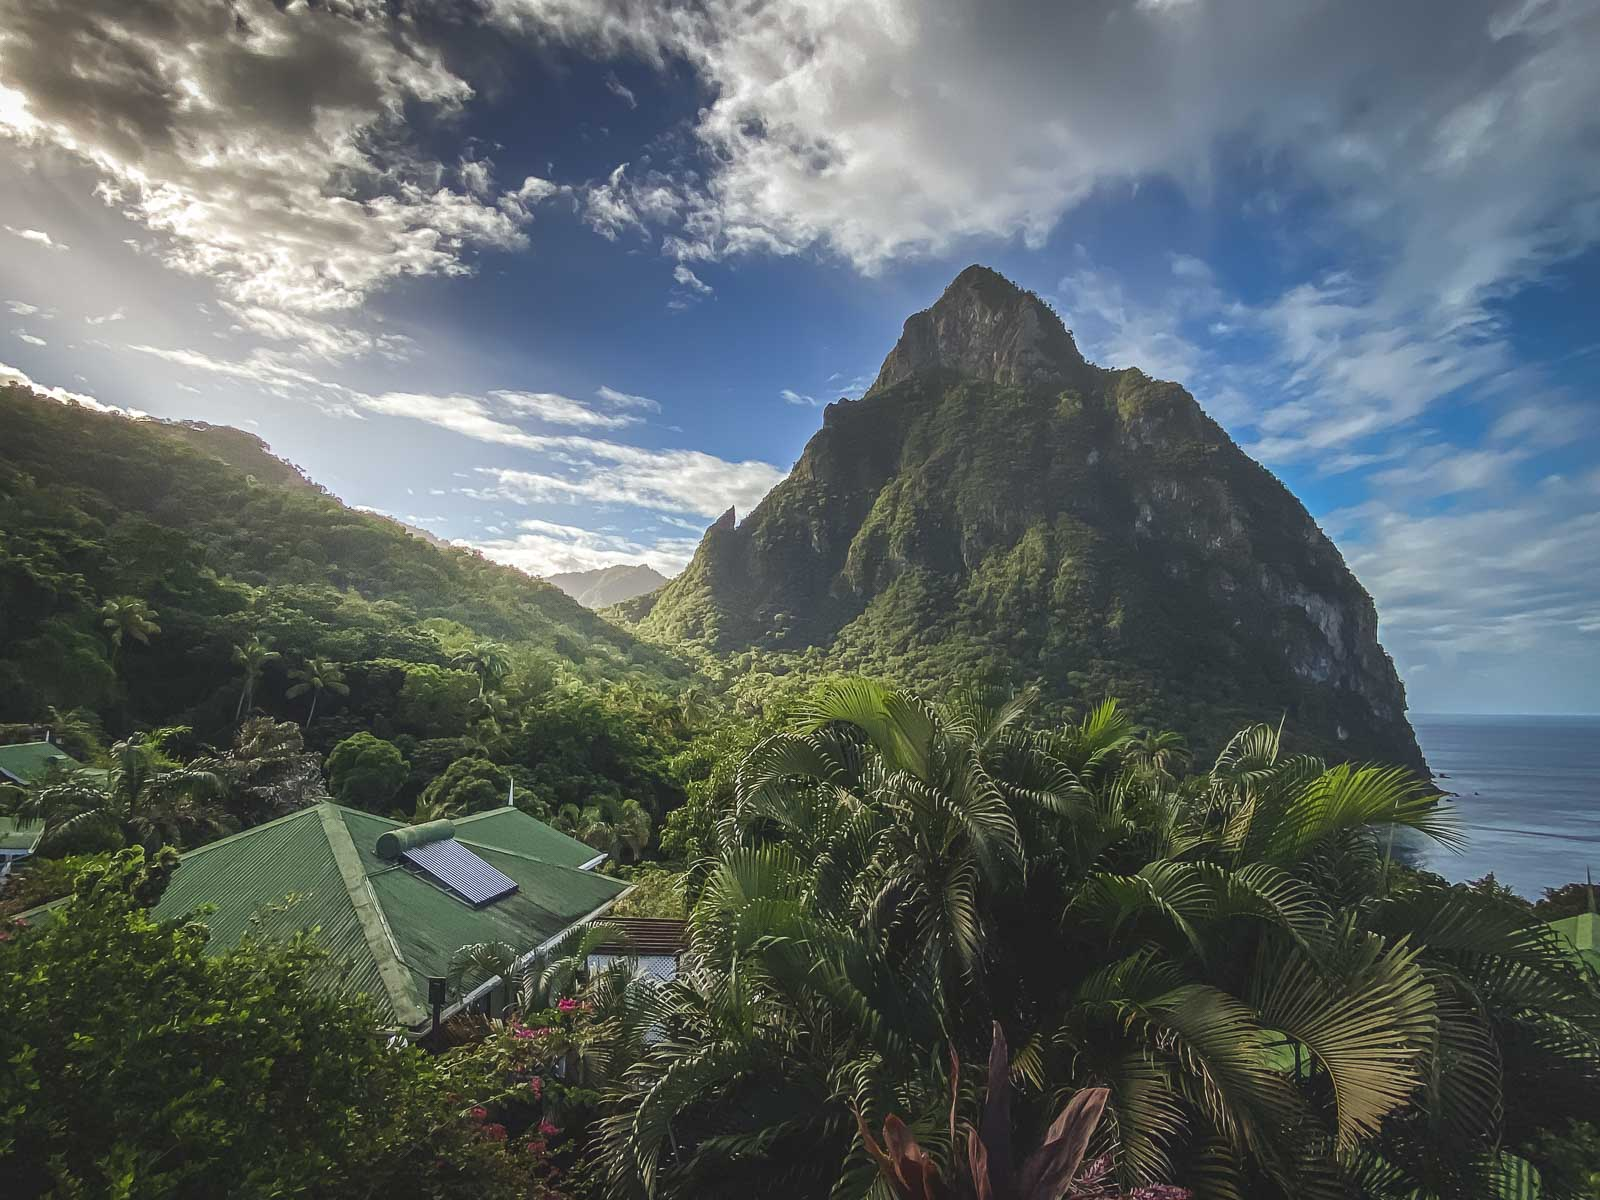 Hiking Gros Piton in St. Lucia